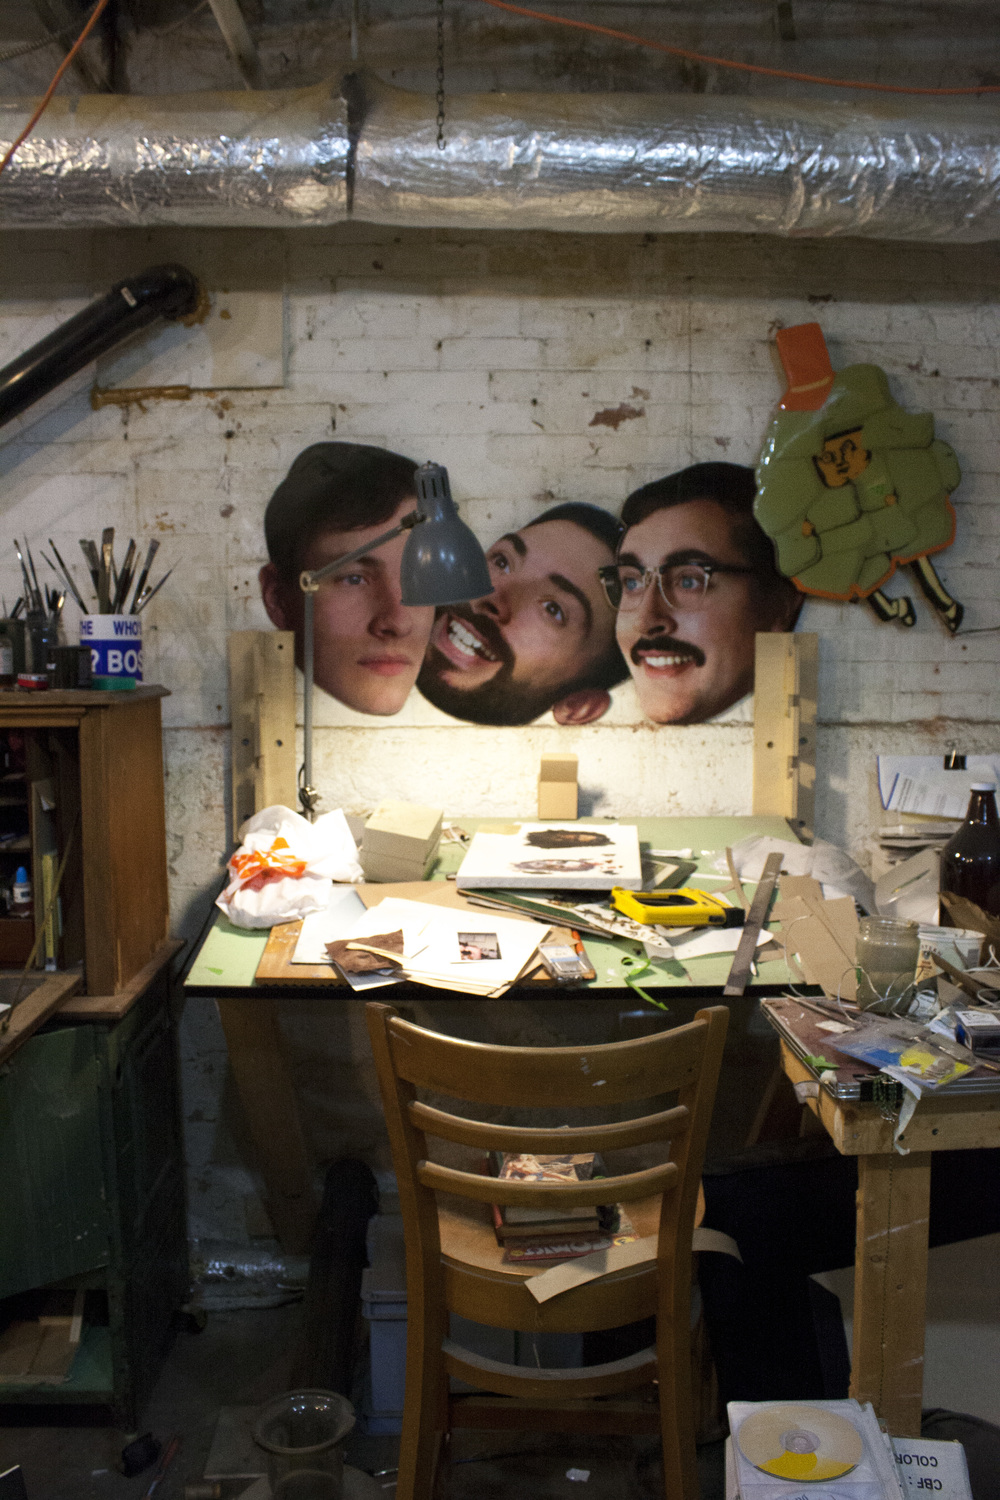 the disembodied heads of (Some of) Team macho. left to right: Stephen Appleby-Barr, Jacob Whibley and Lauchie Reid.